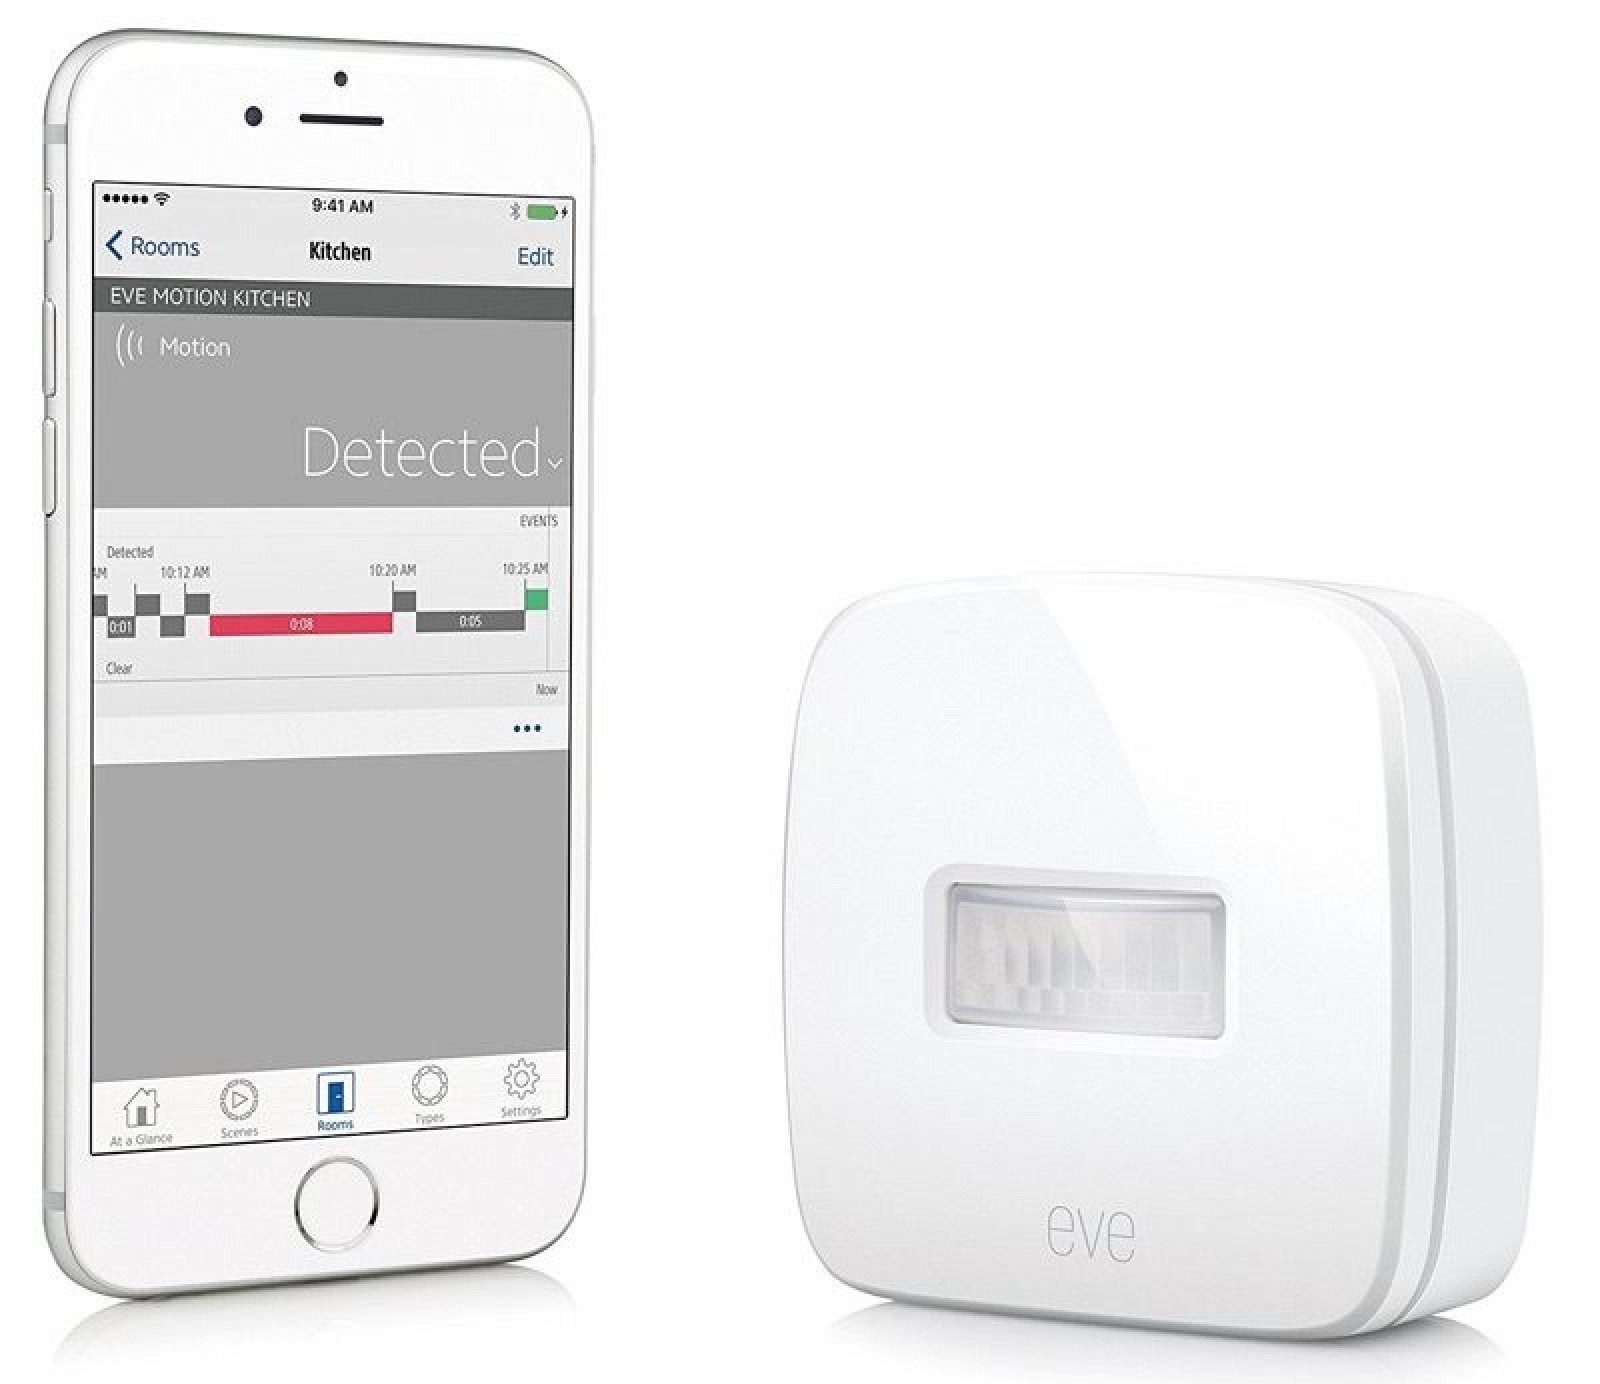 Elgato Announces Eve Motion Homekit Enabled Wireless